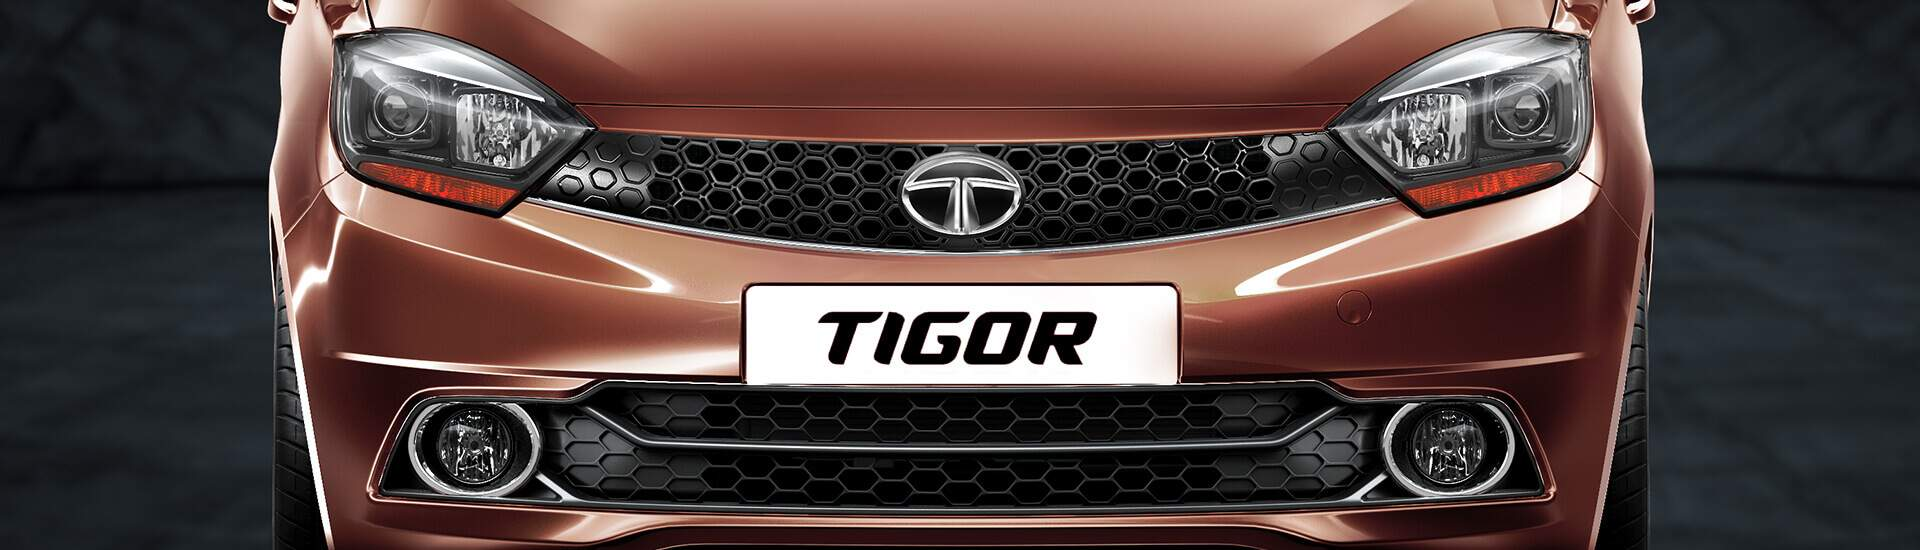 Tata Tigor XM launched in India